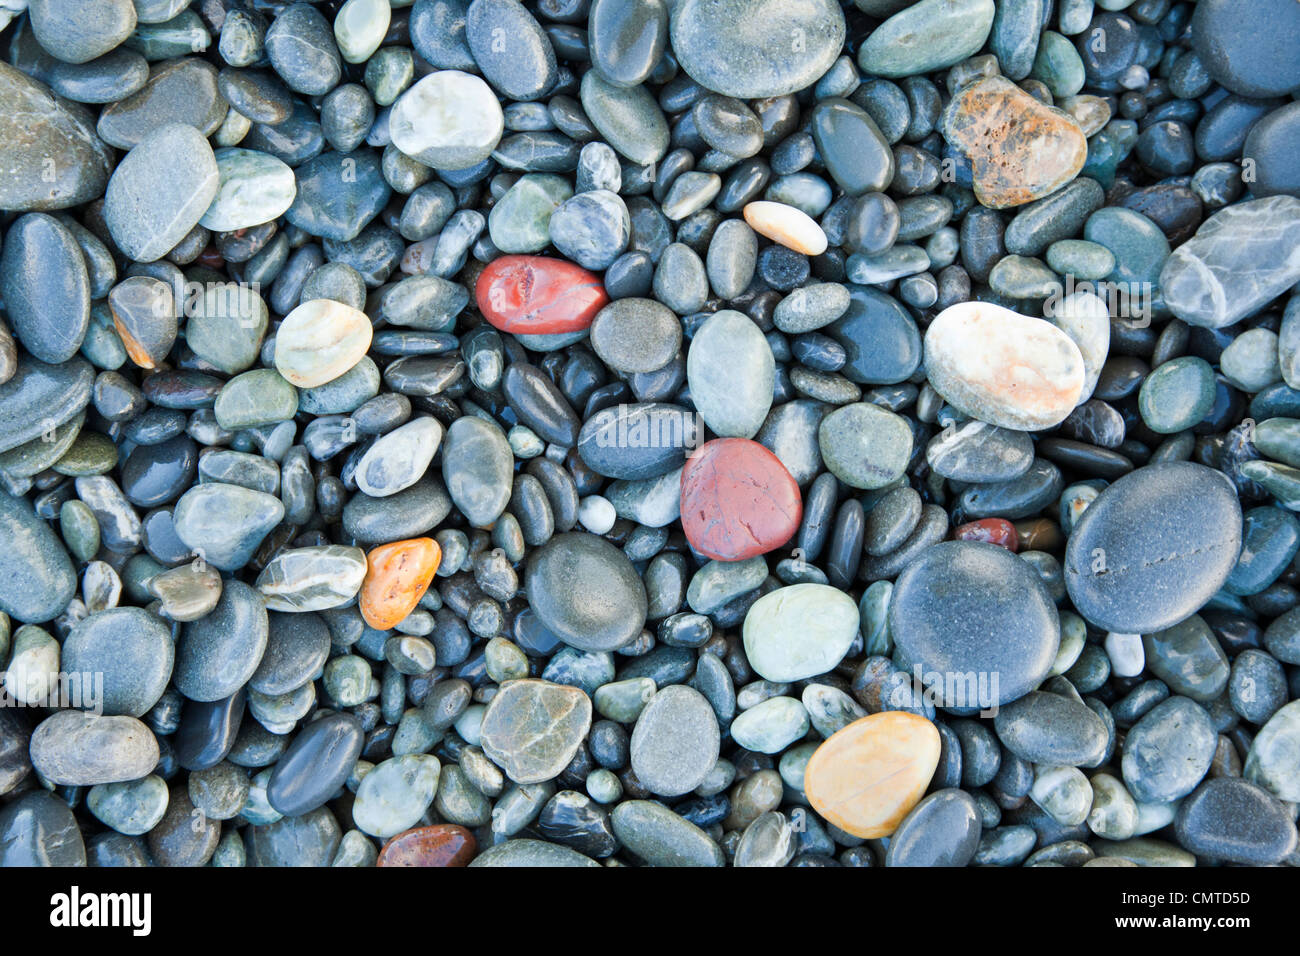 The shingle beach at Birdlings Flat, Canterbury, New Zealand, is noted for small agates and colourful pebbles. - Stock Image